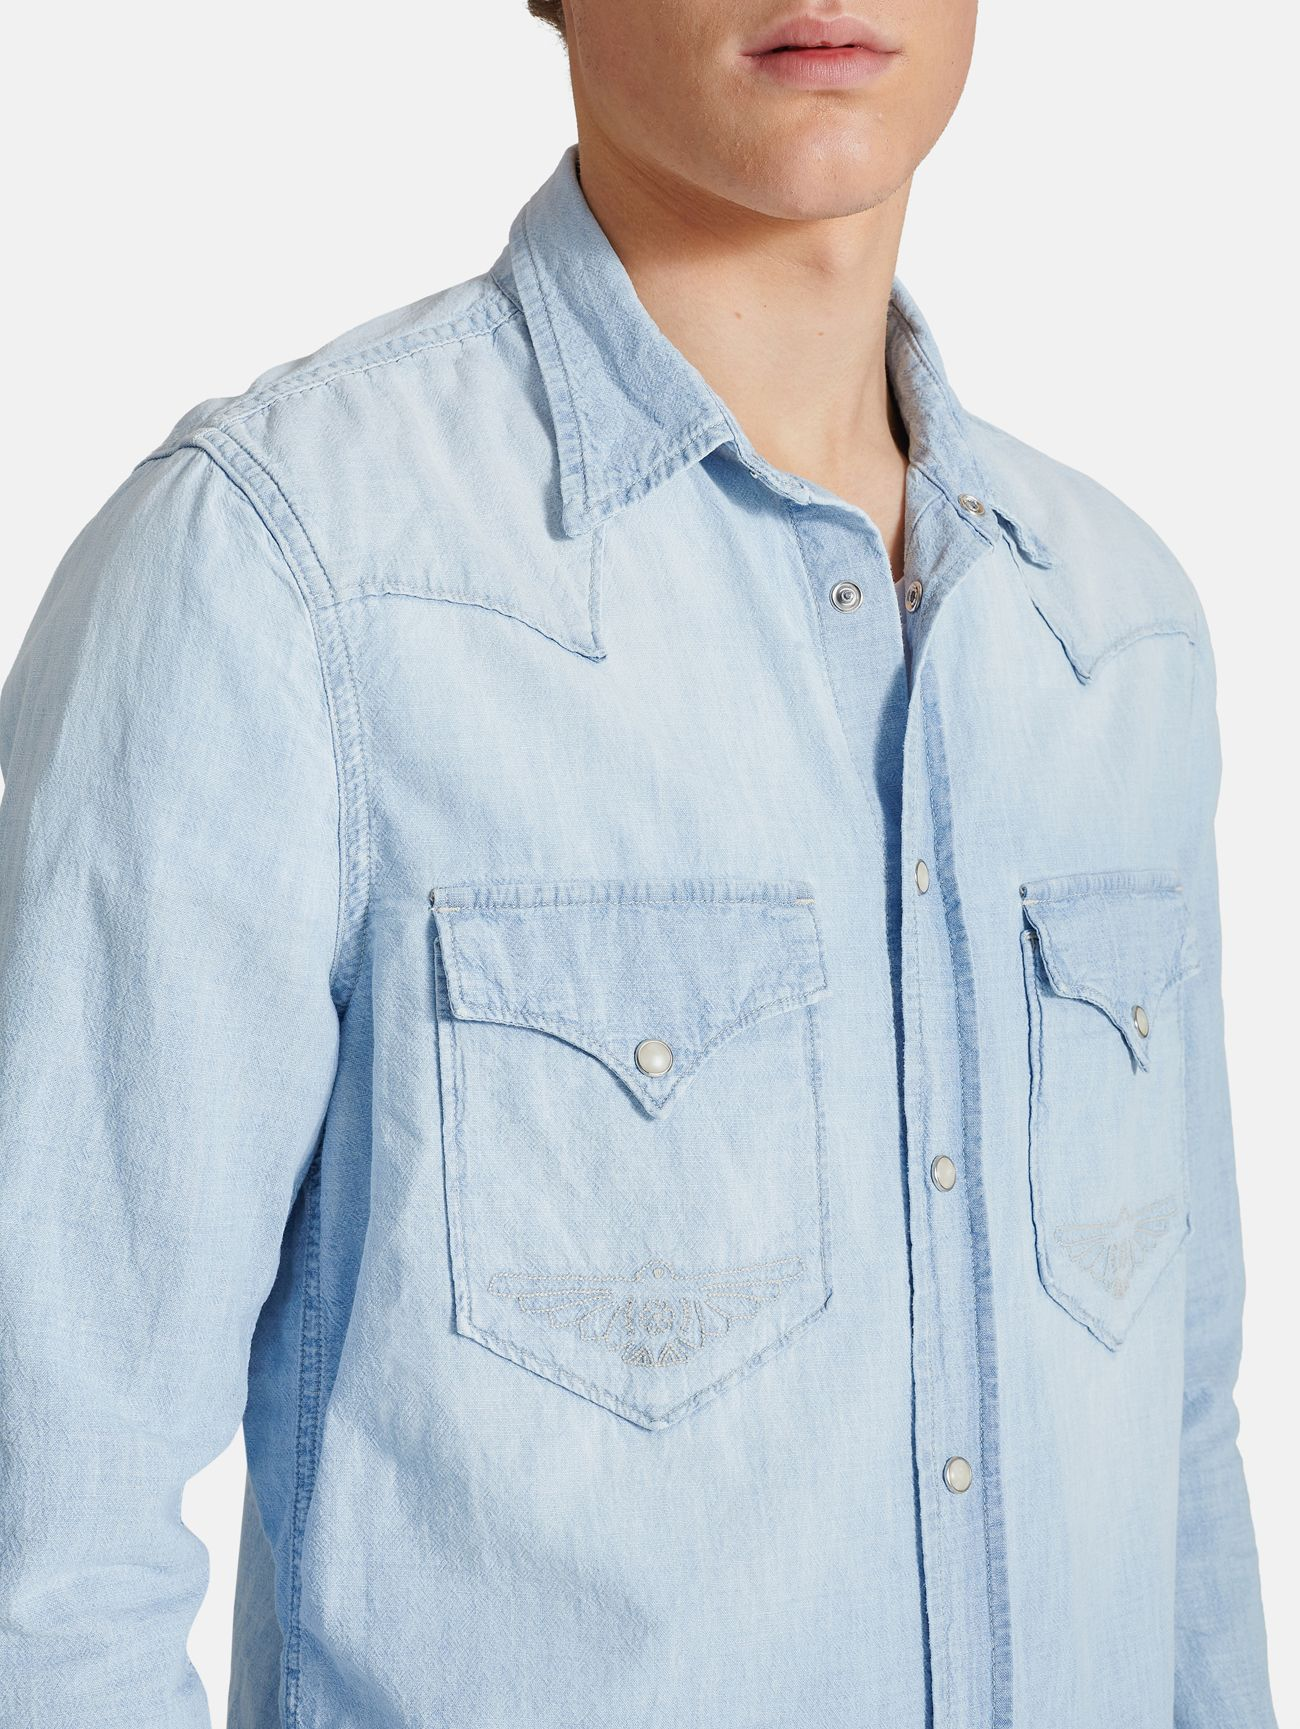 RODEO EMBROIDERY WESTERN SHIRT STONE BLEACHED SKY BLUE